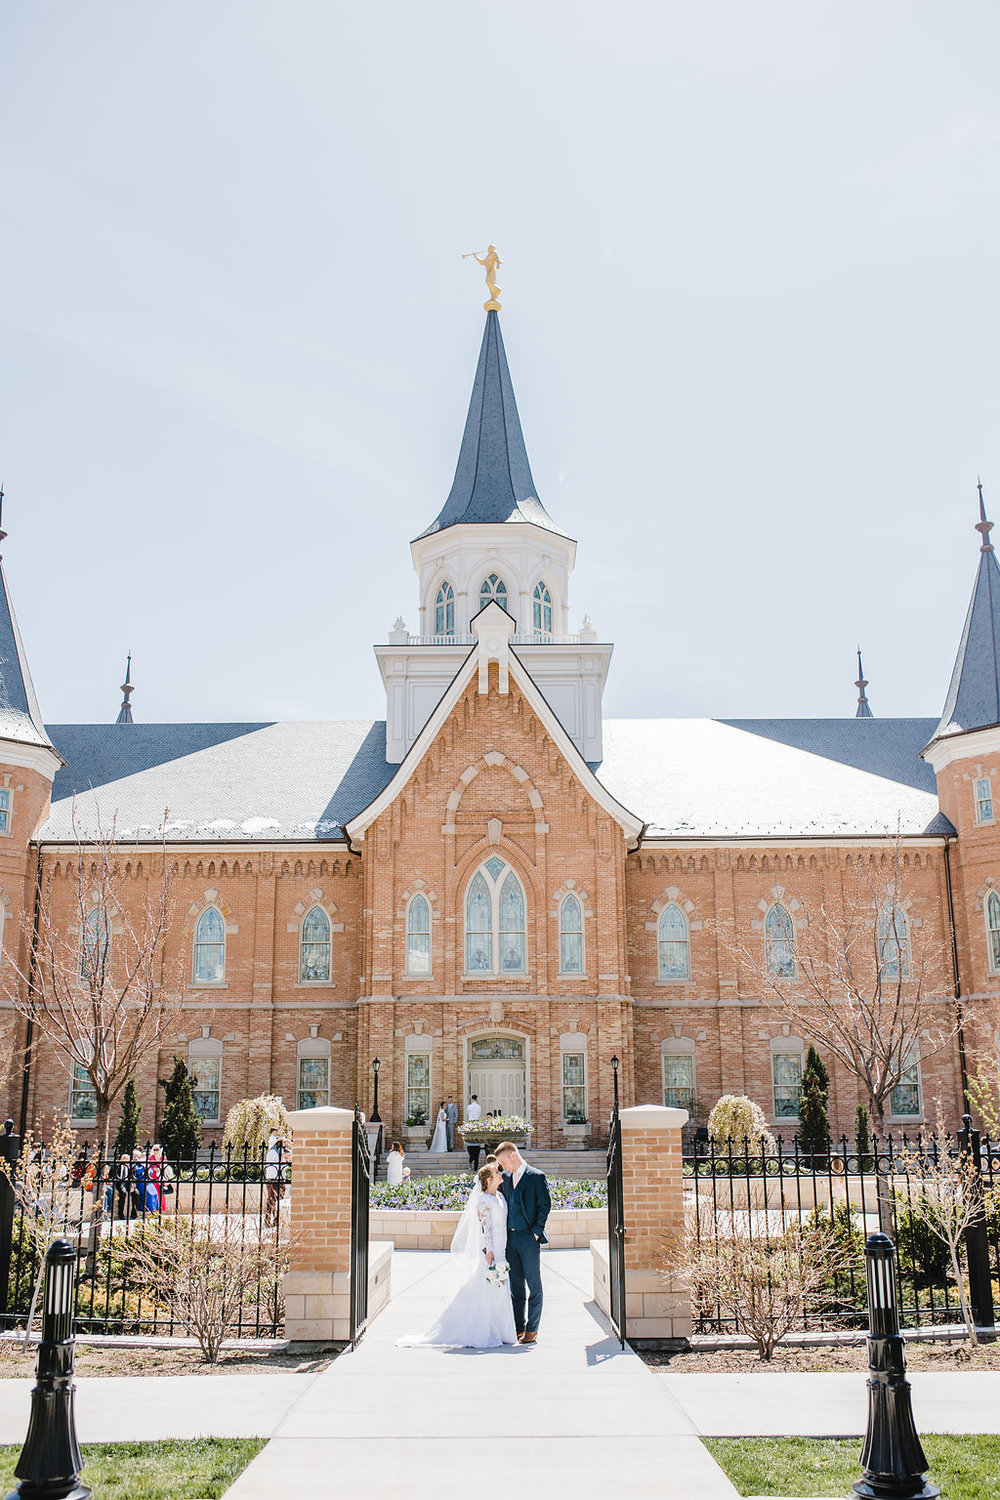 provo lds city center temple bride and groom wedding photographer